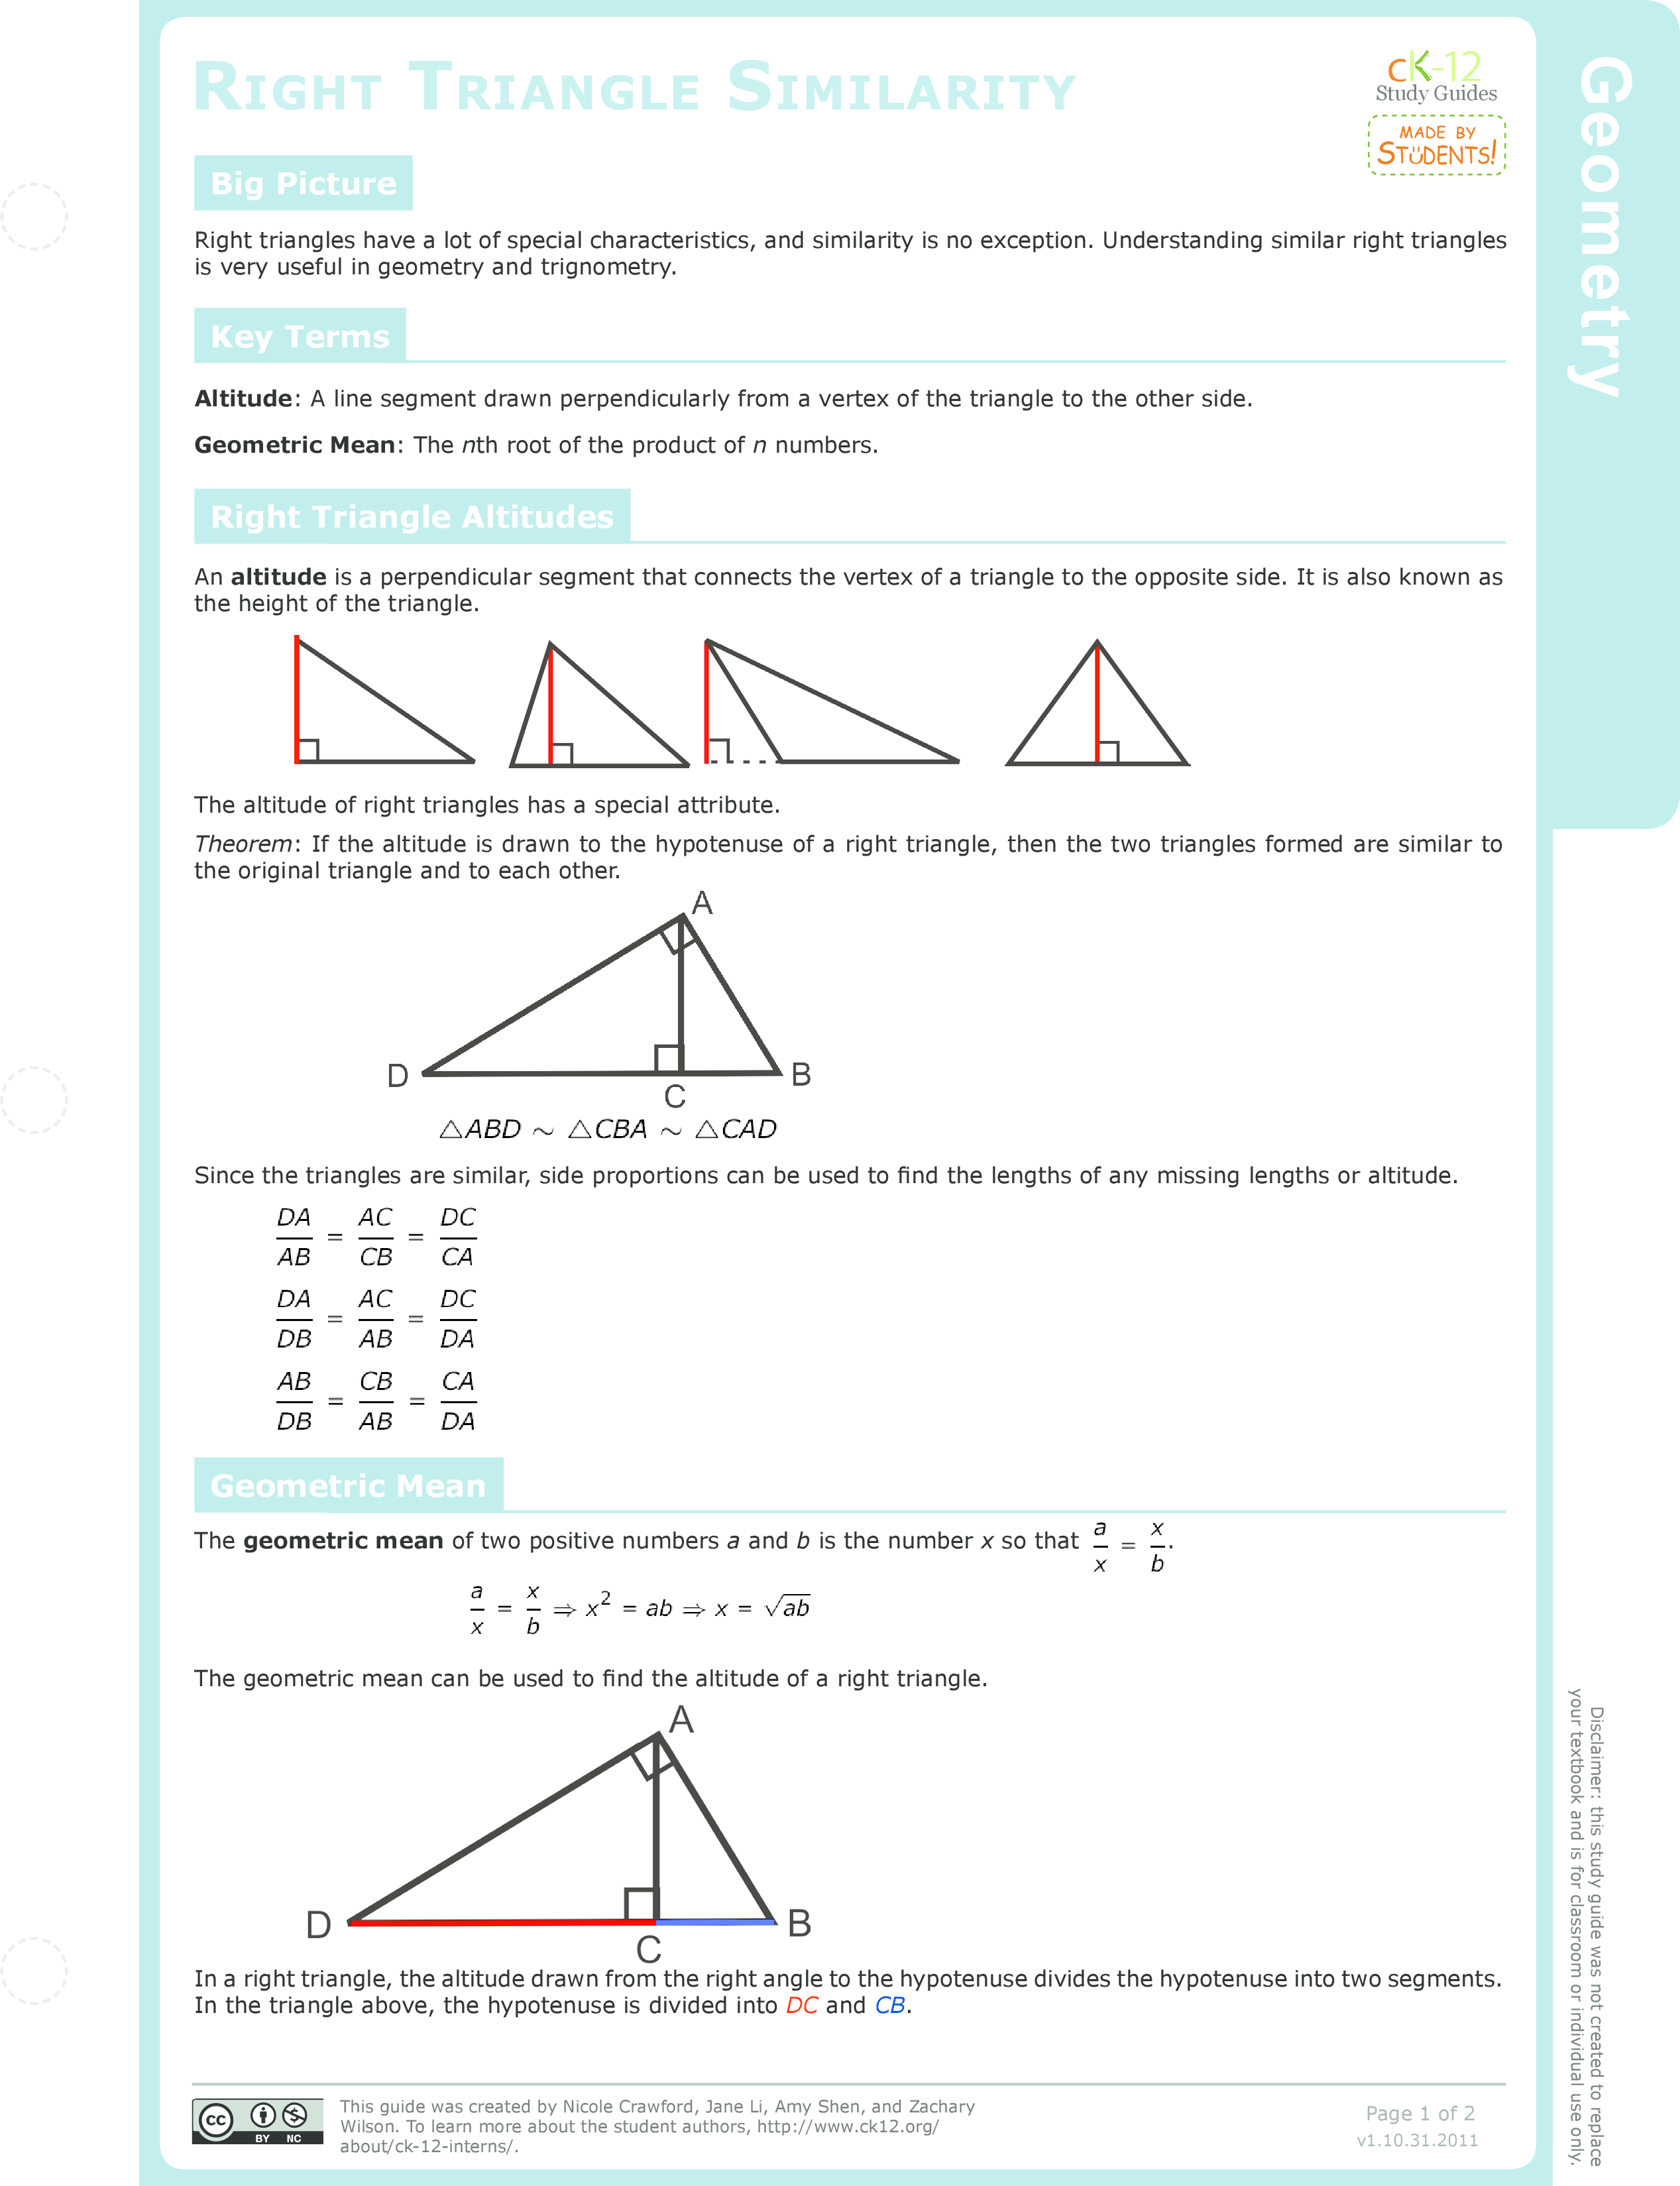 Inscribed Similar Triangles | CK-12 Foundation